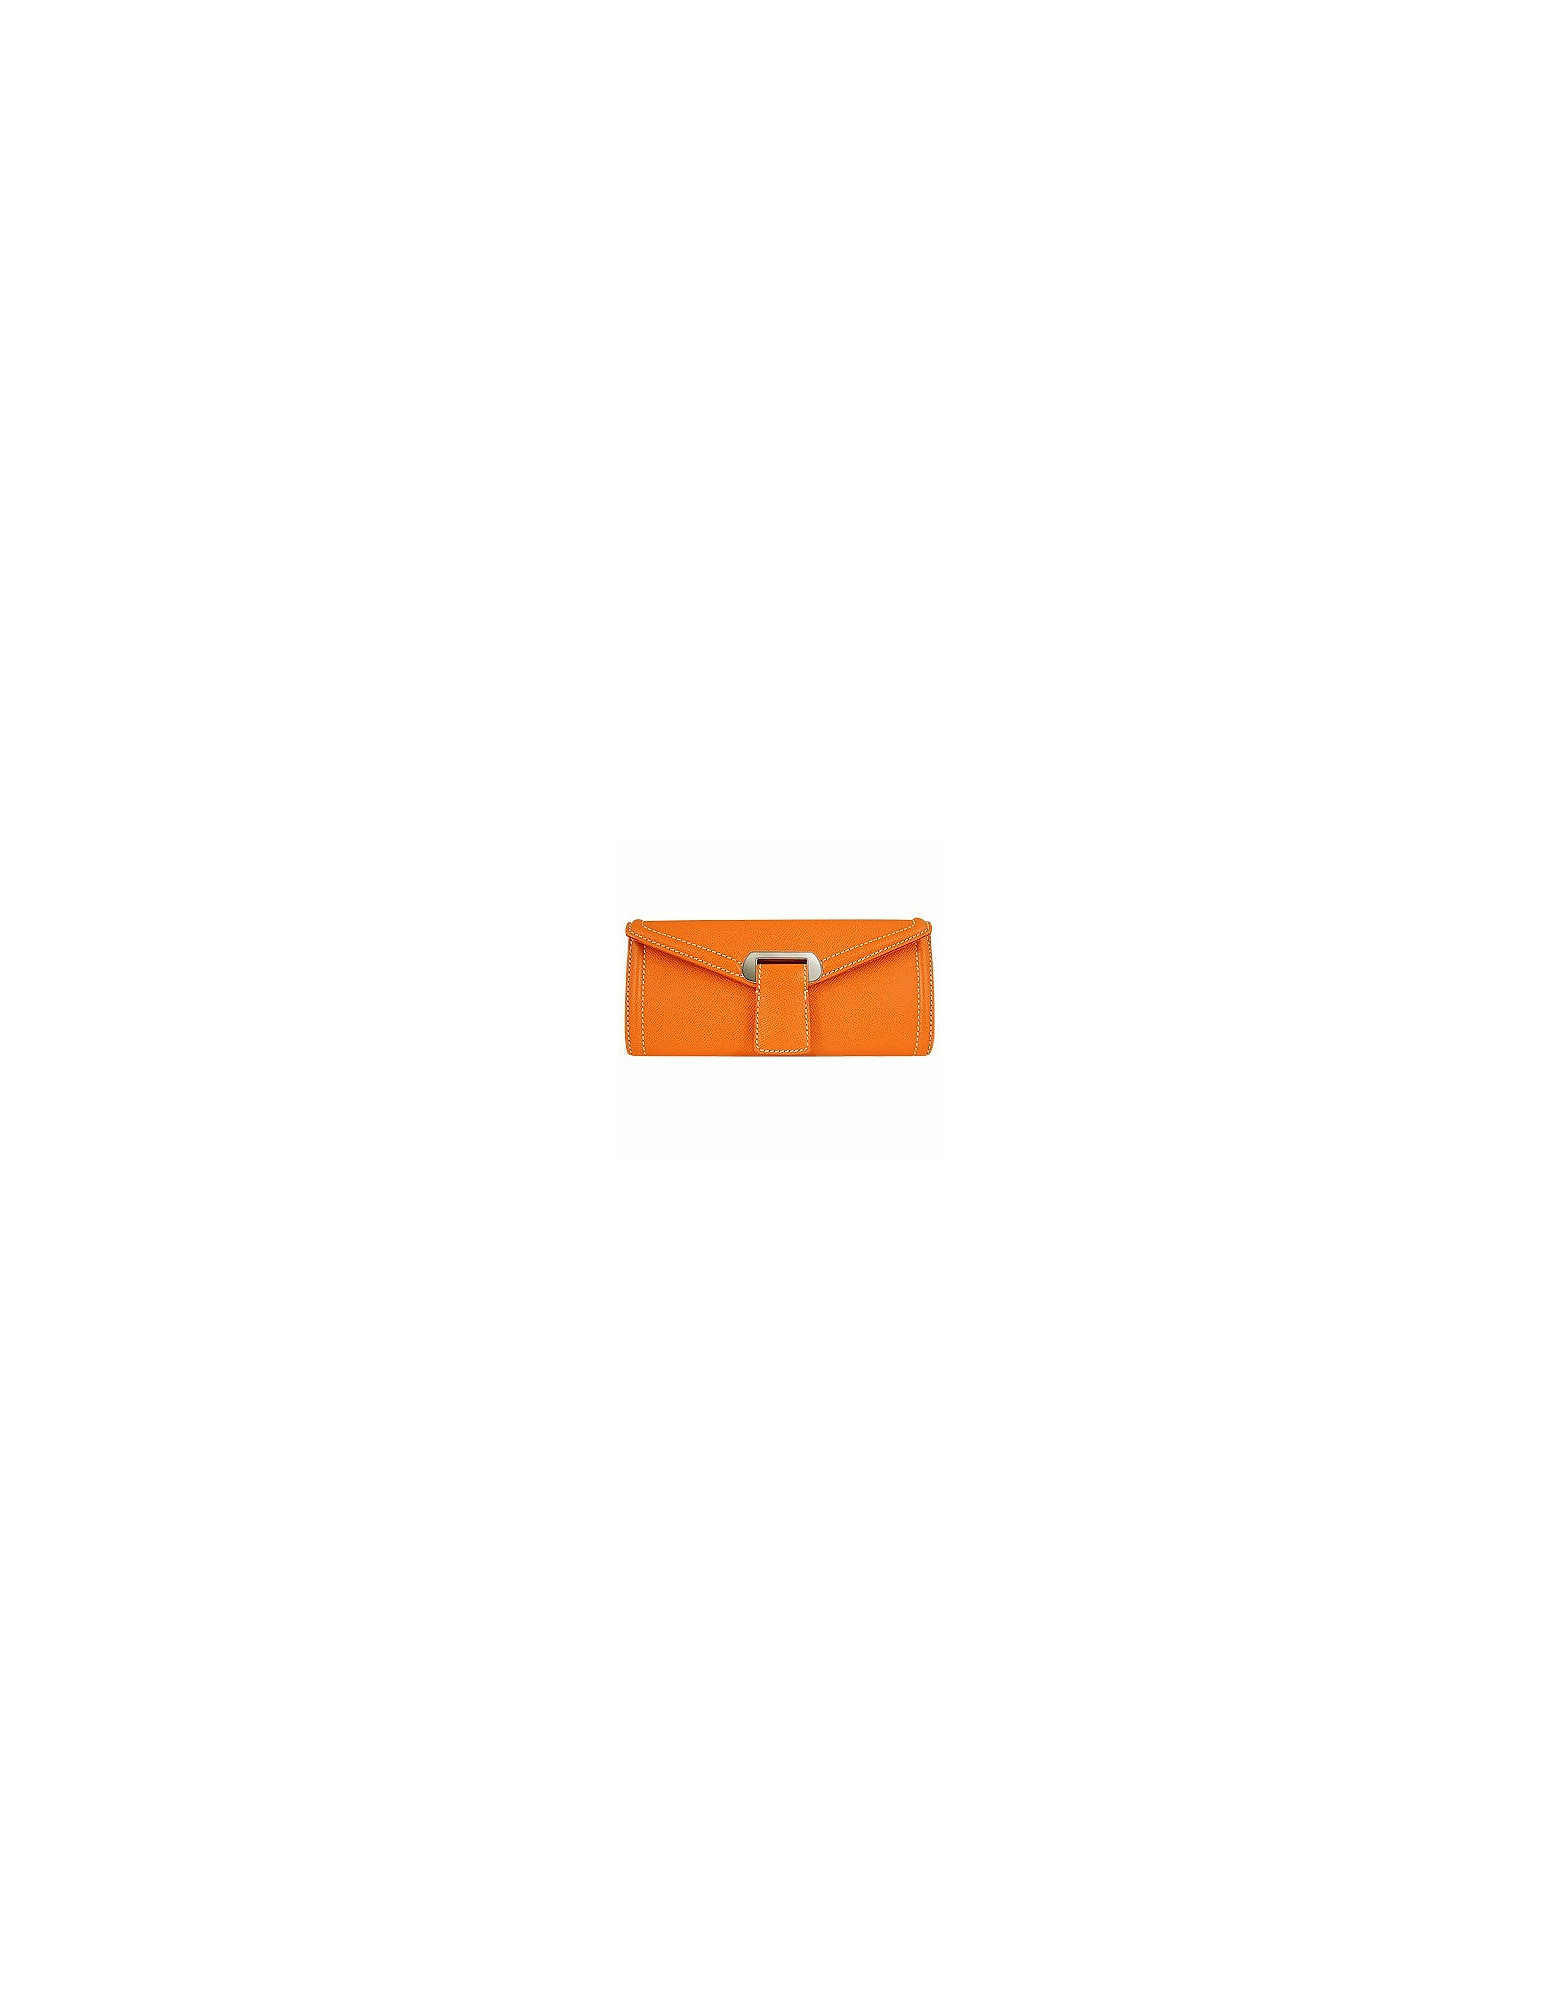 Pochette en cuir brocardé orange